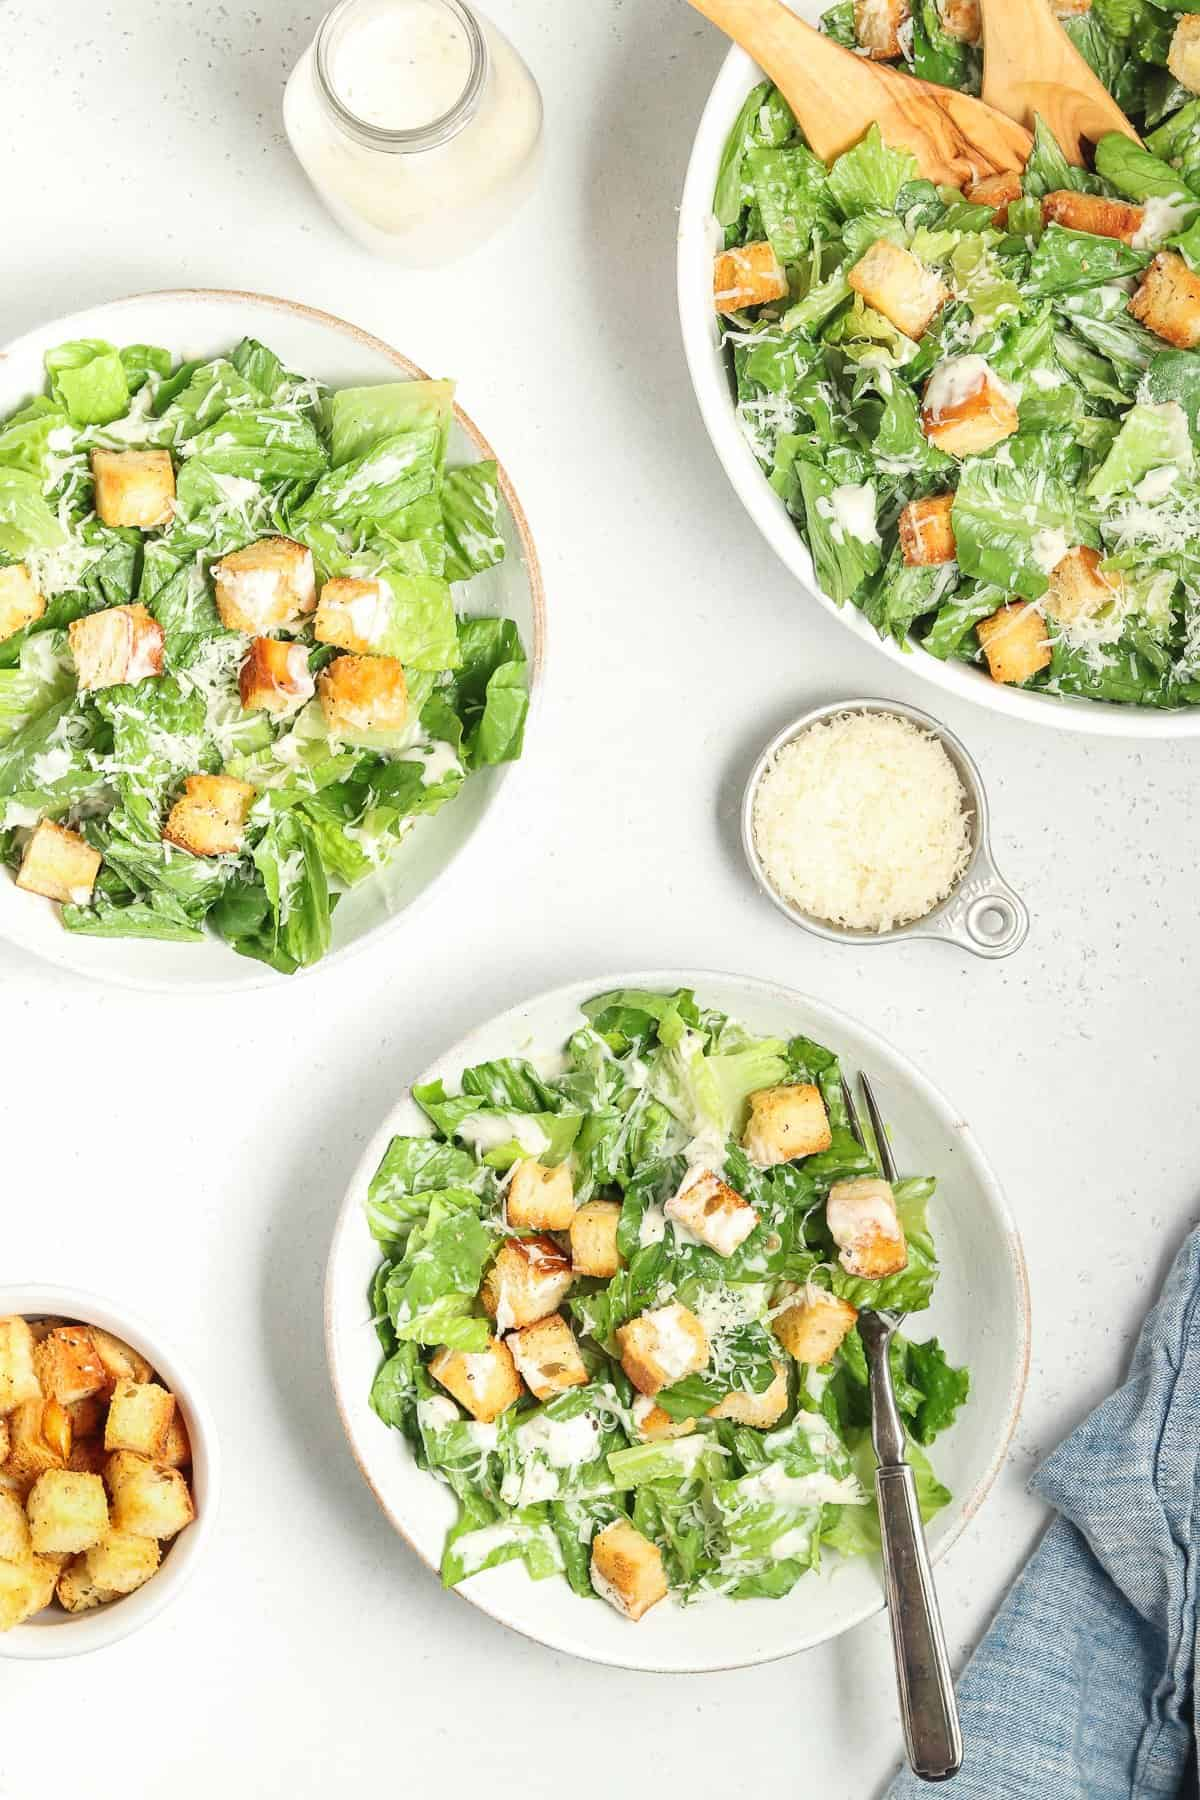 Full overhead view of 3 bowls filled with vegan caesar salad. Croutons, blue napkin and parmesan on the side.